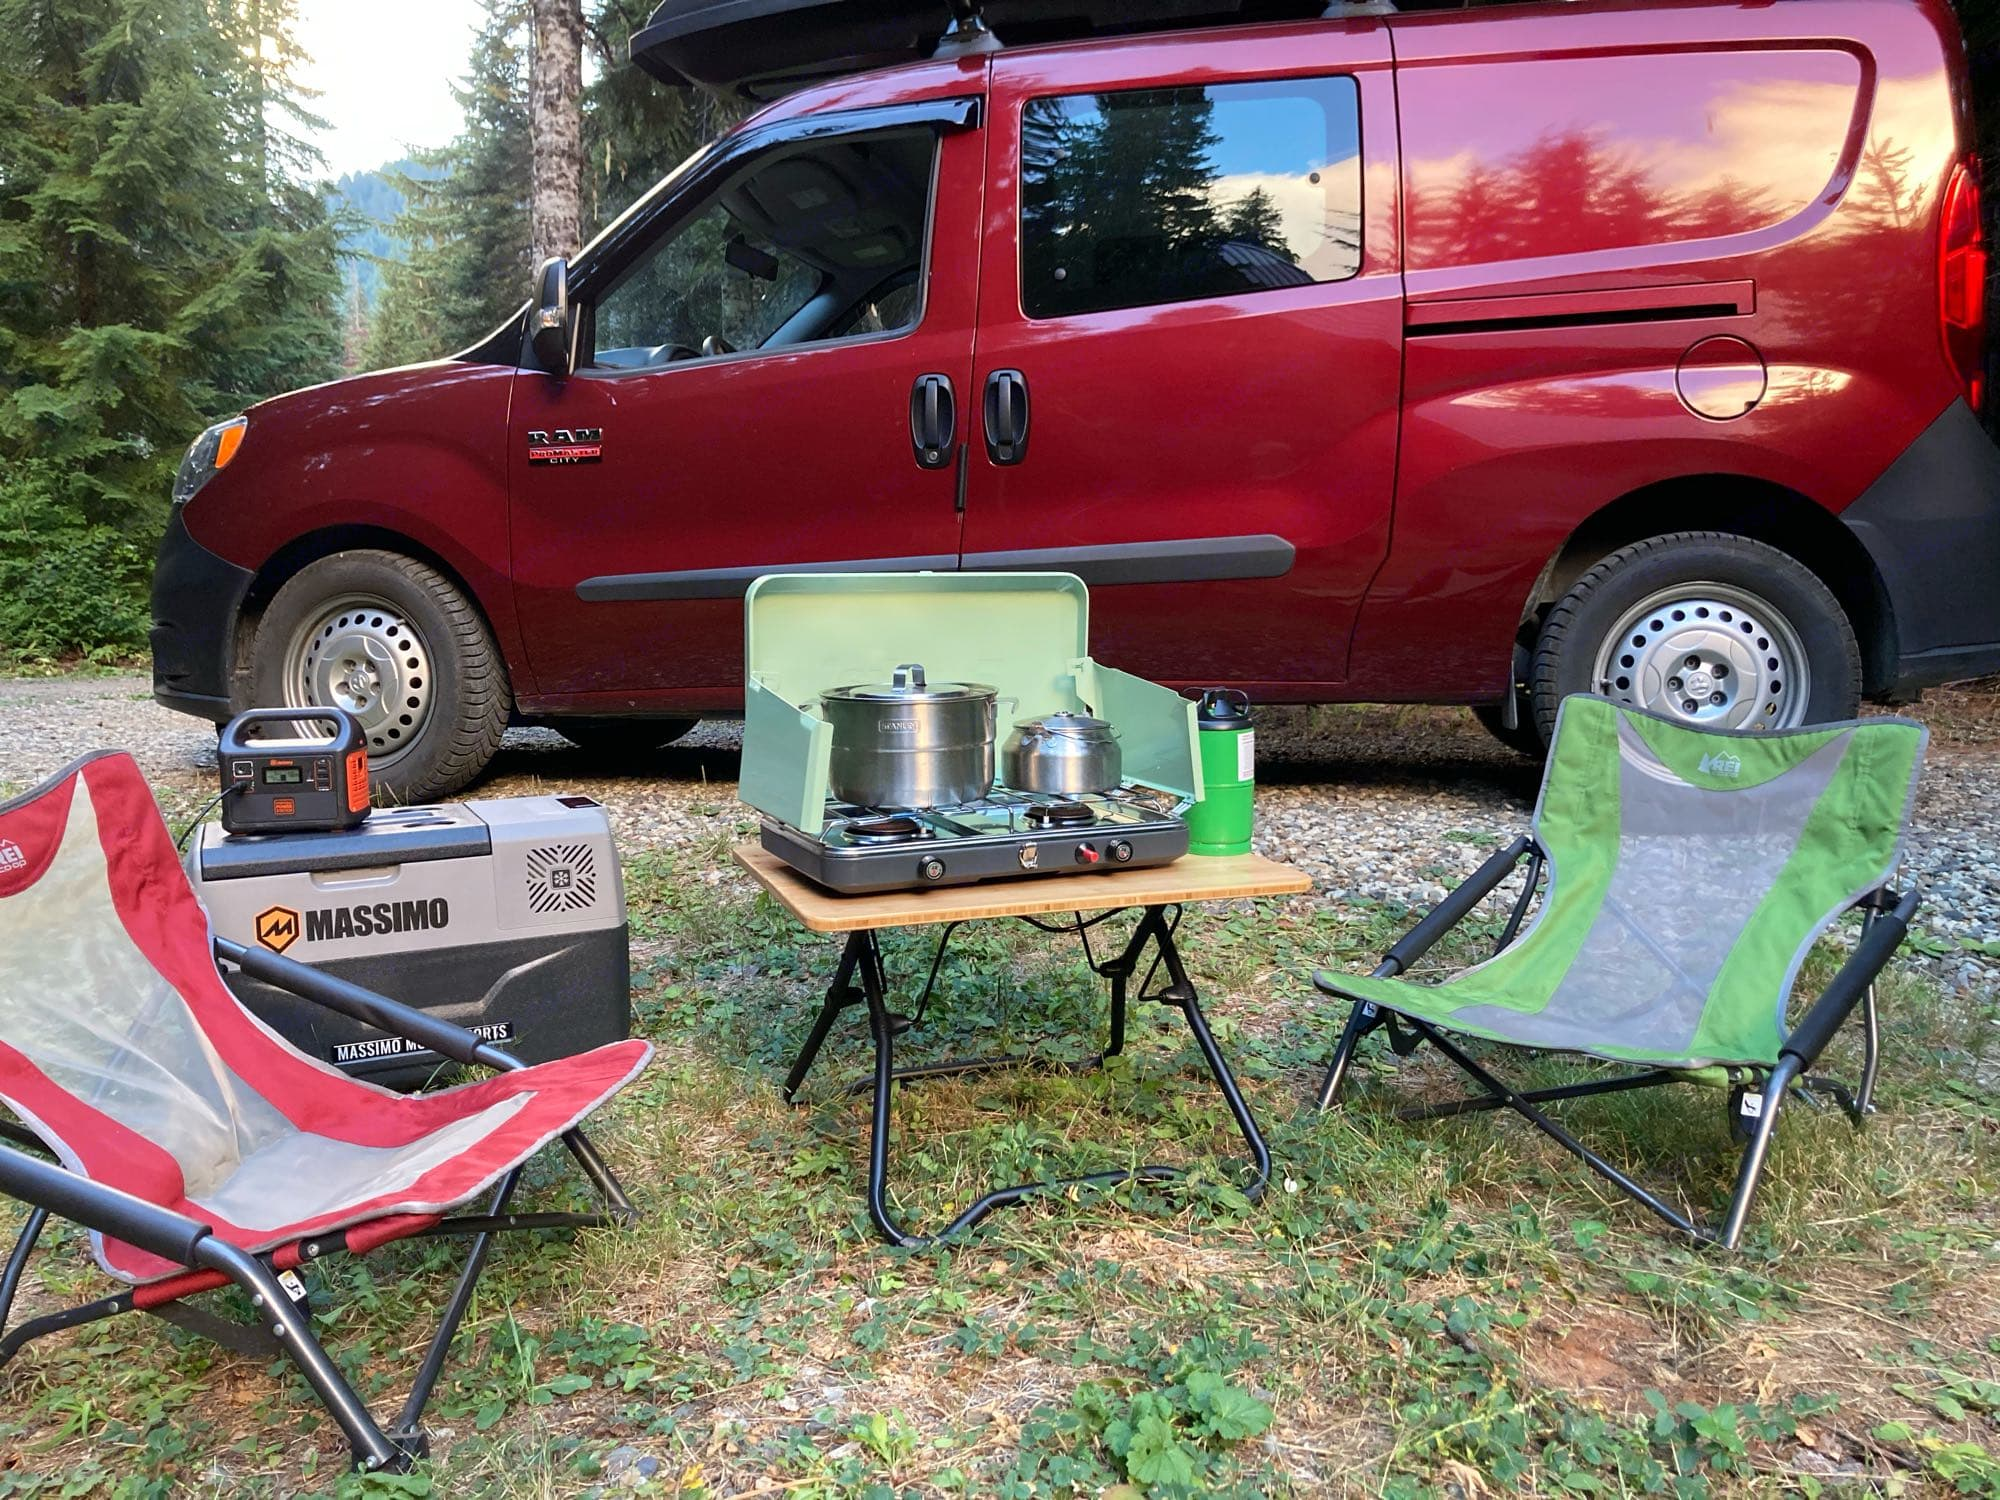 Just some of the options - chairs, table, stove and cooking supplies (not all pictured), Refrigerator/freezer! - and battery pack.. Ram Promaster City 2018